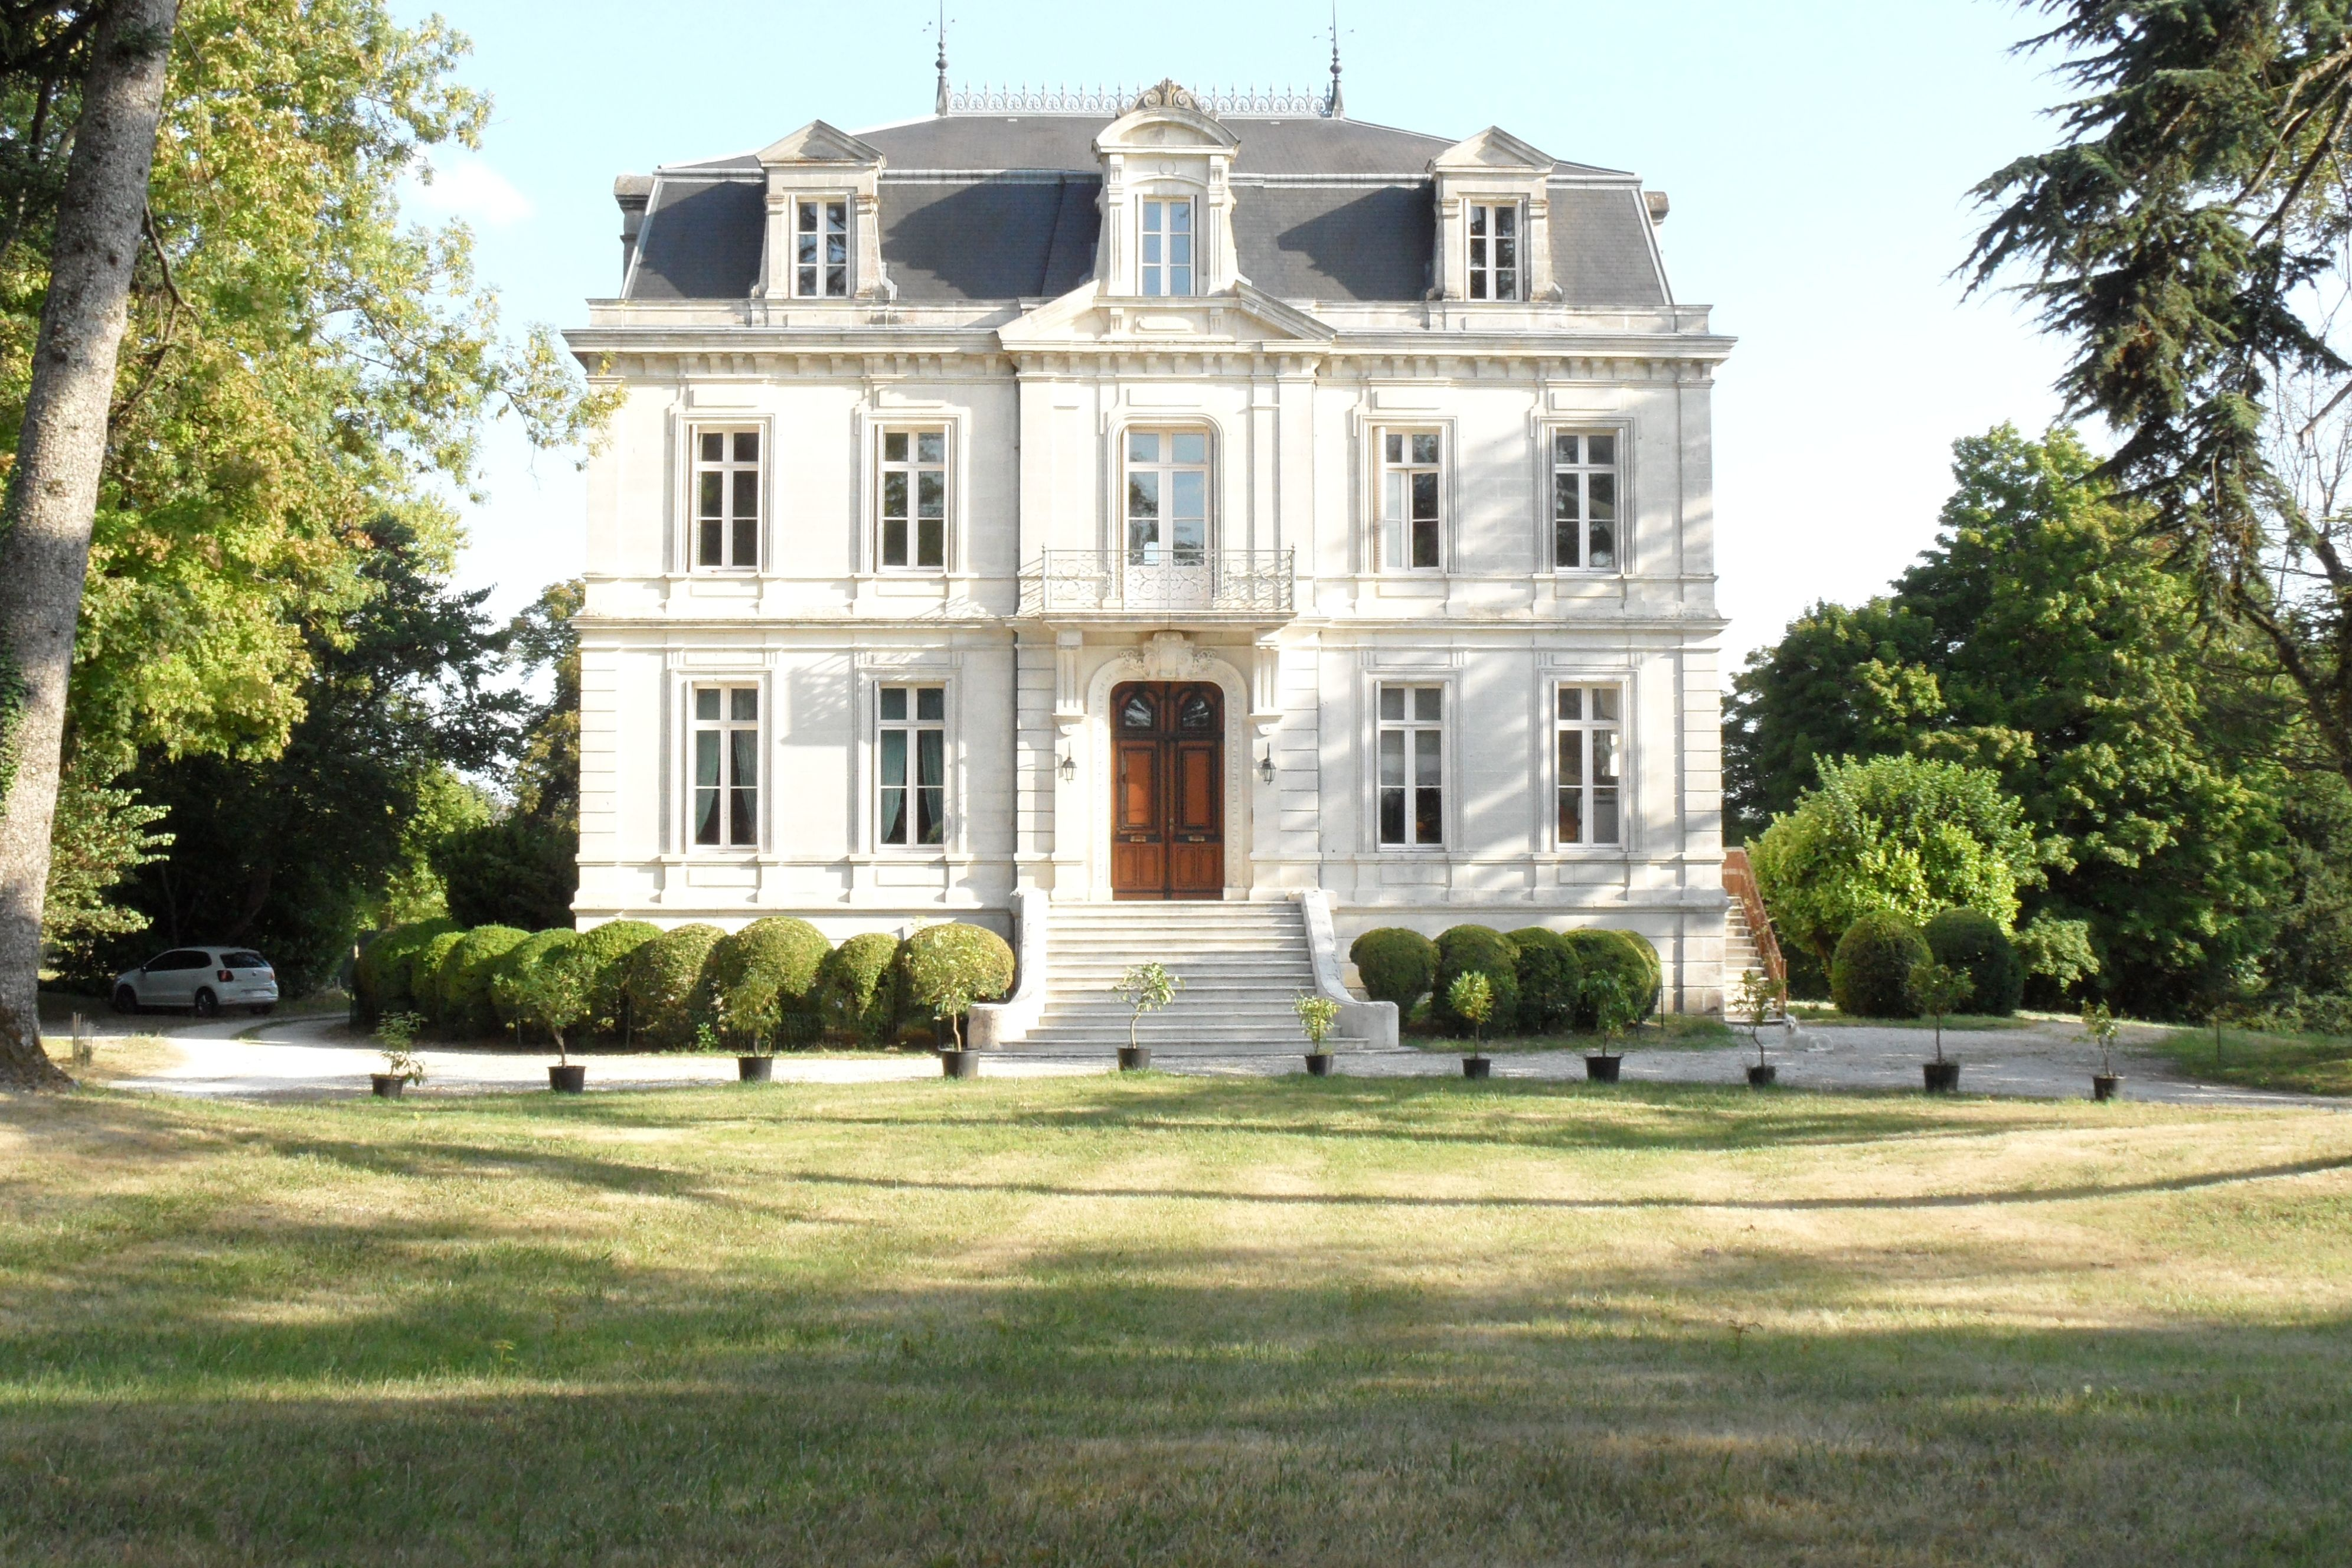 Pin By Melchior On Chateau Dreaming French Chateau Homes French Architecture French Mansion